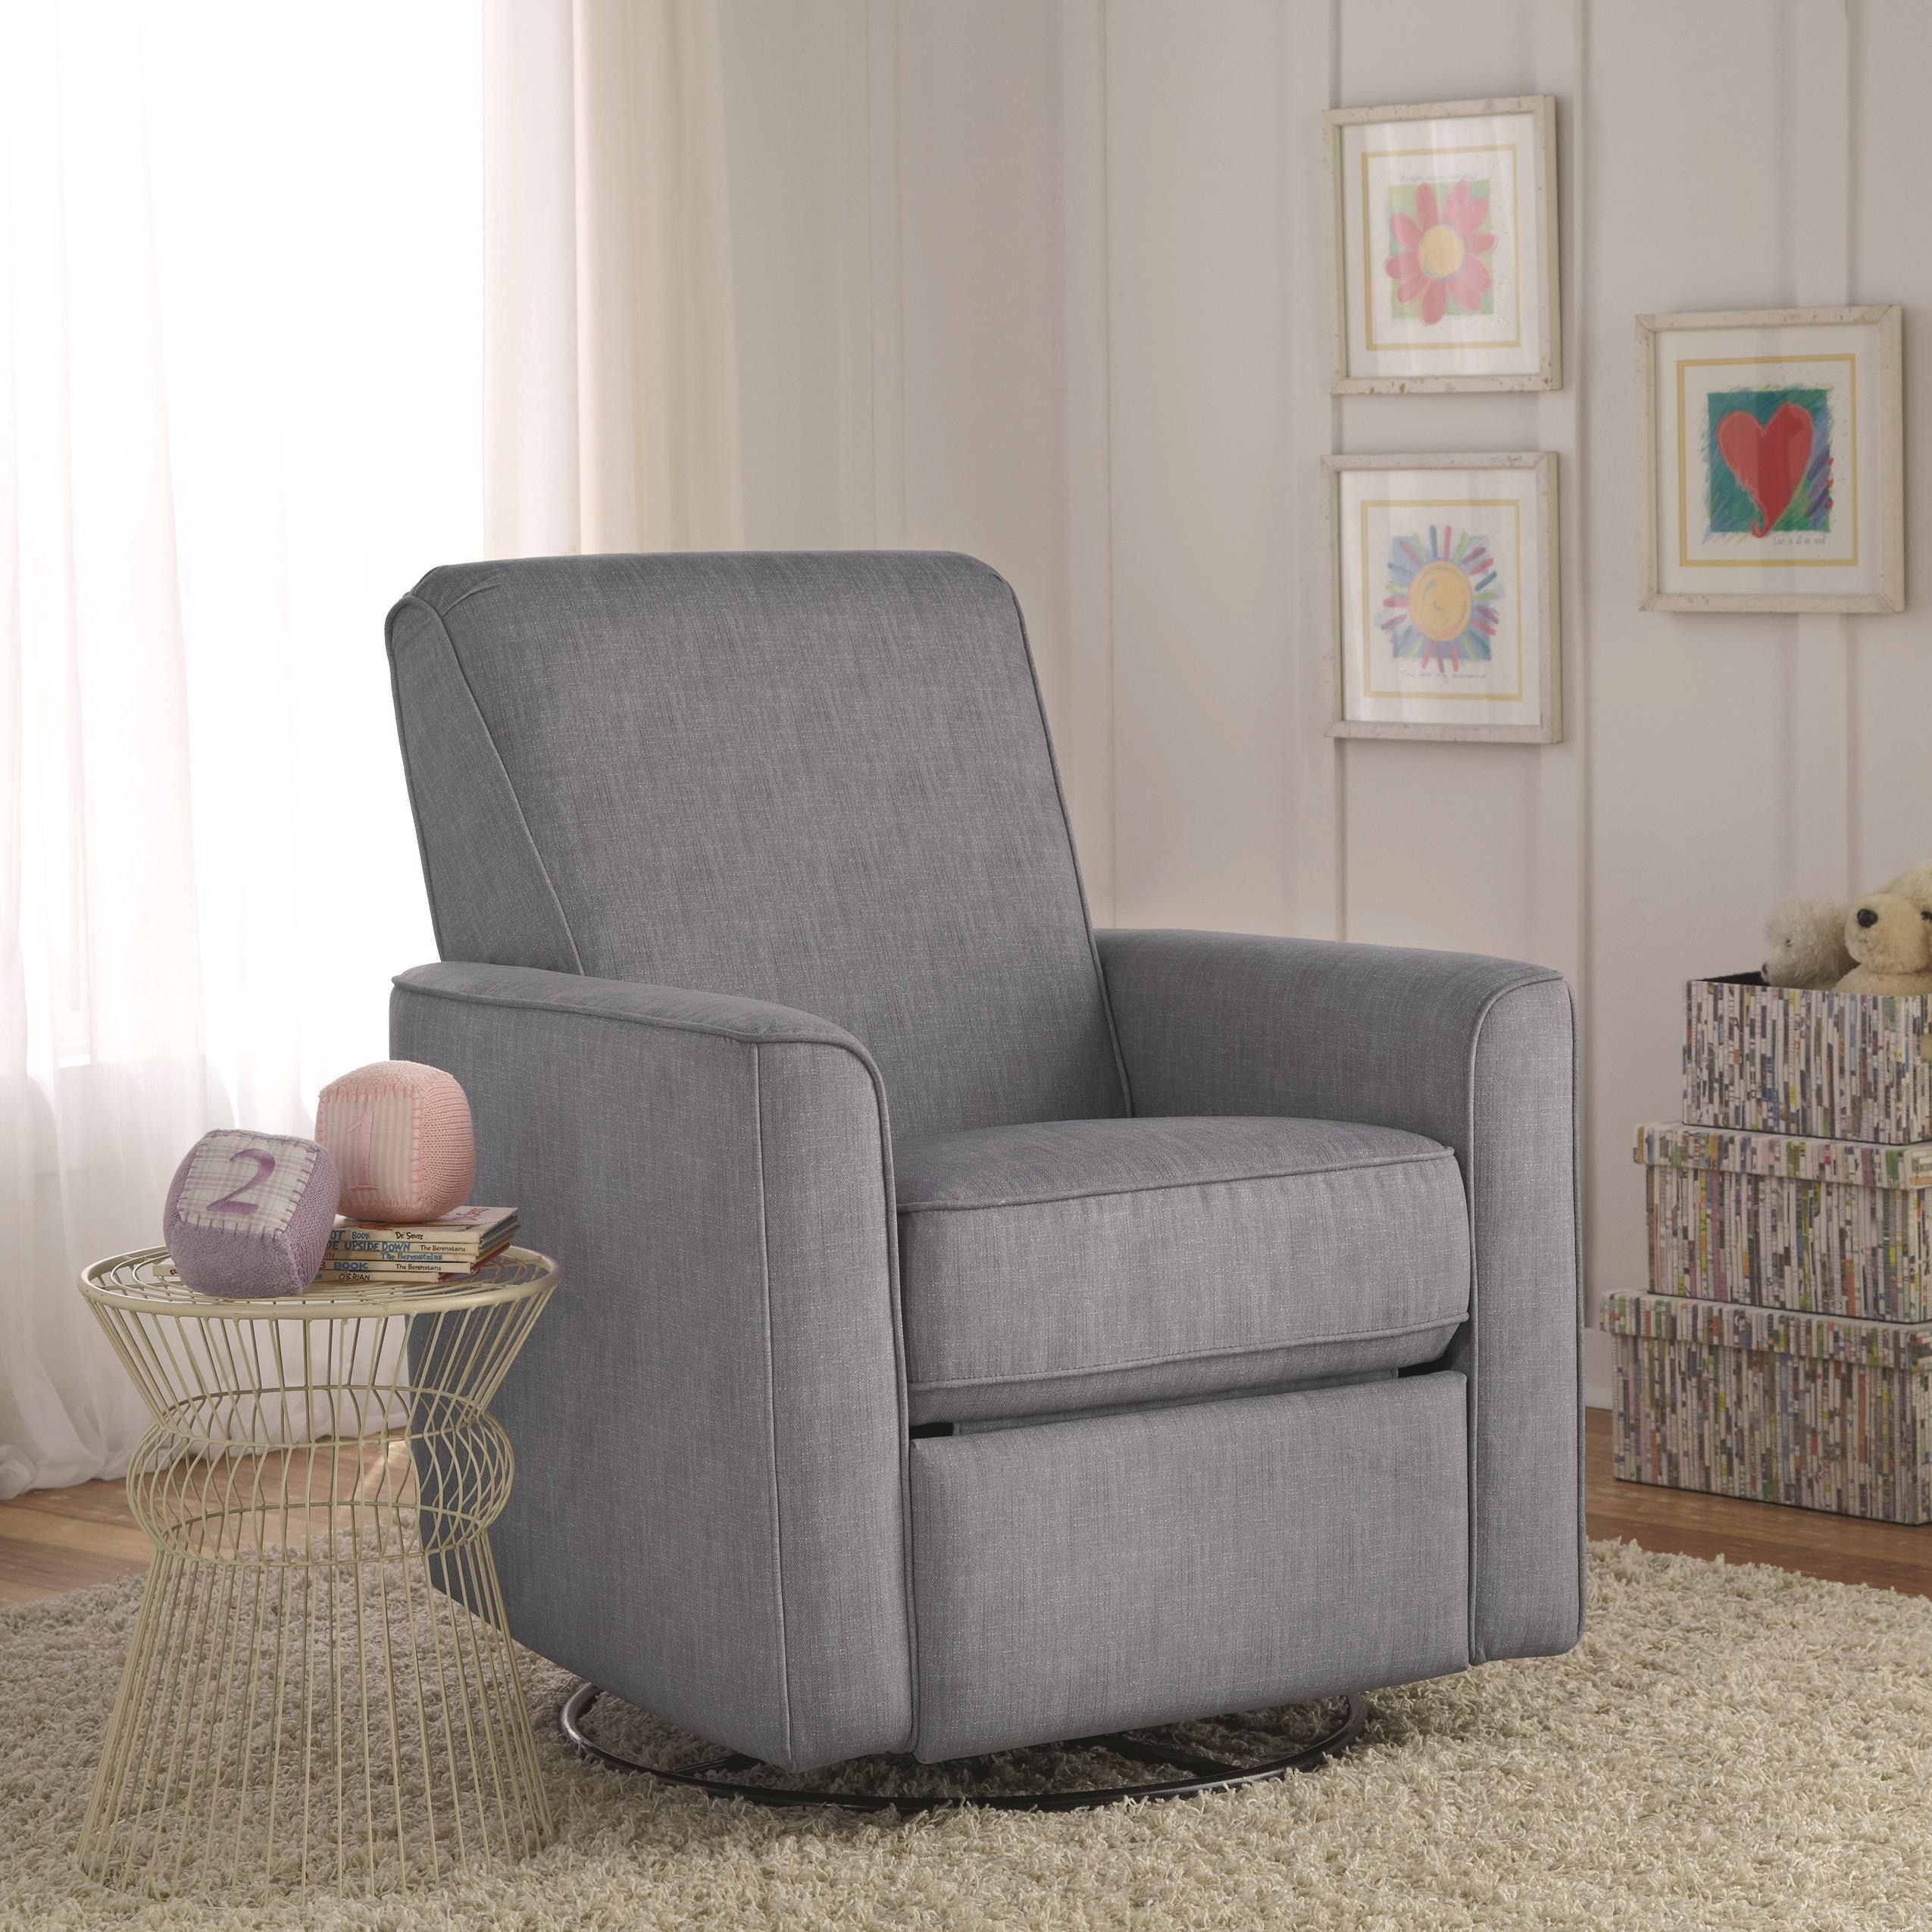 Zoey Grey Nursery Swivel Glider Recliner Chair | Overstock.com Shopping - The Best Deals & Zoey Grey Nursery Swivel Glider Recliner Chair | Overstock.com ...